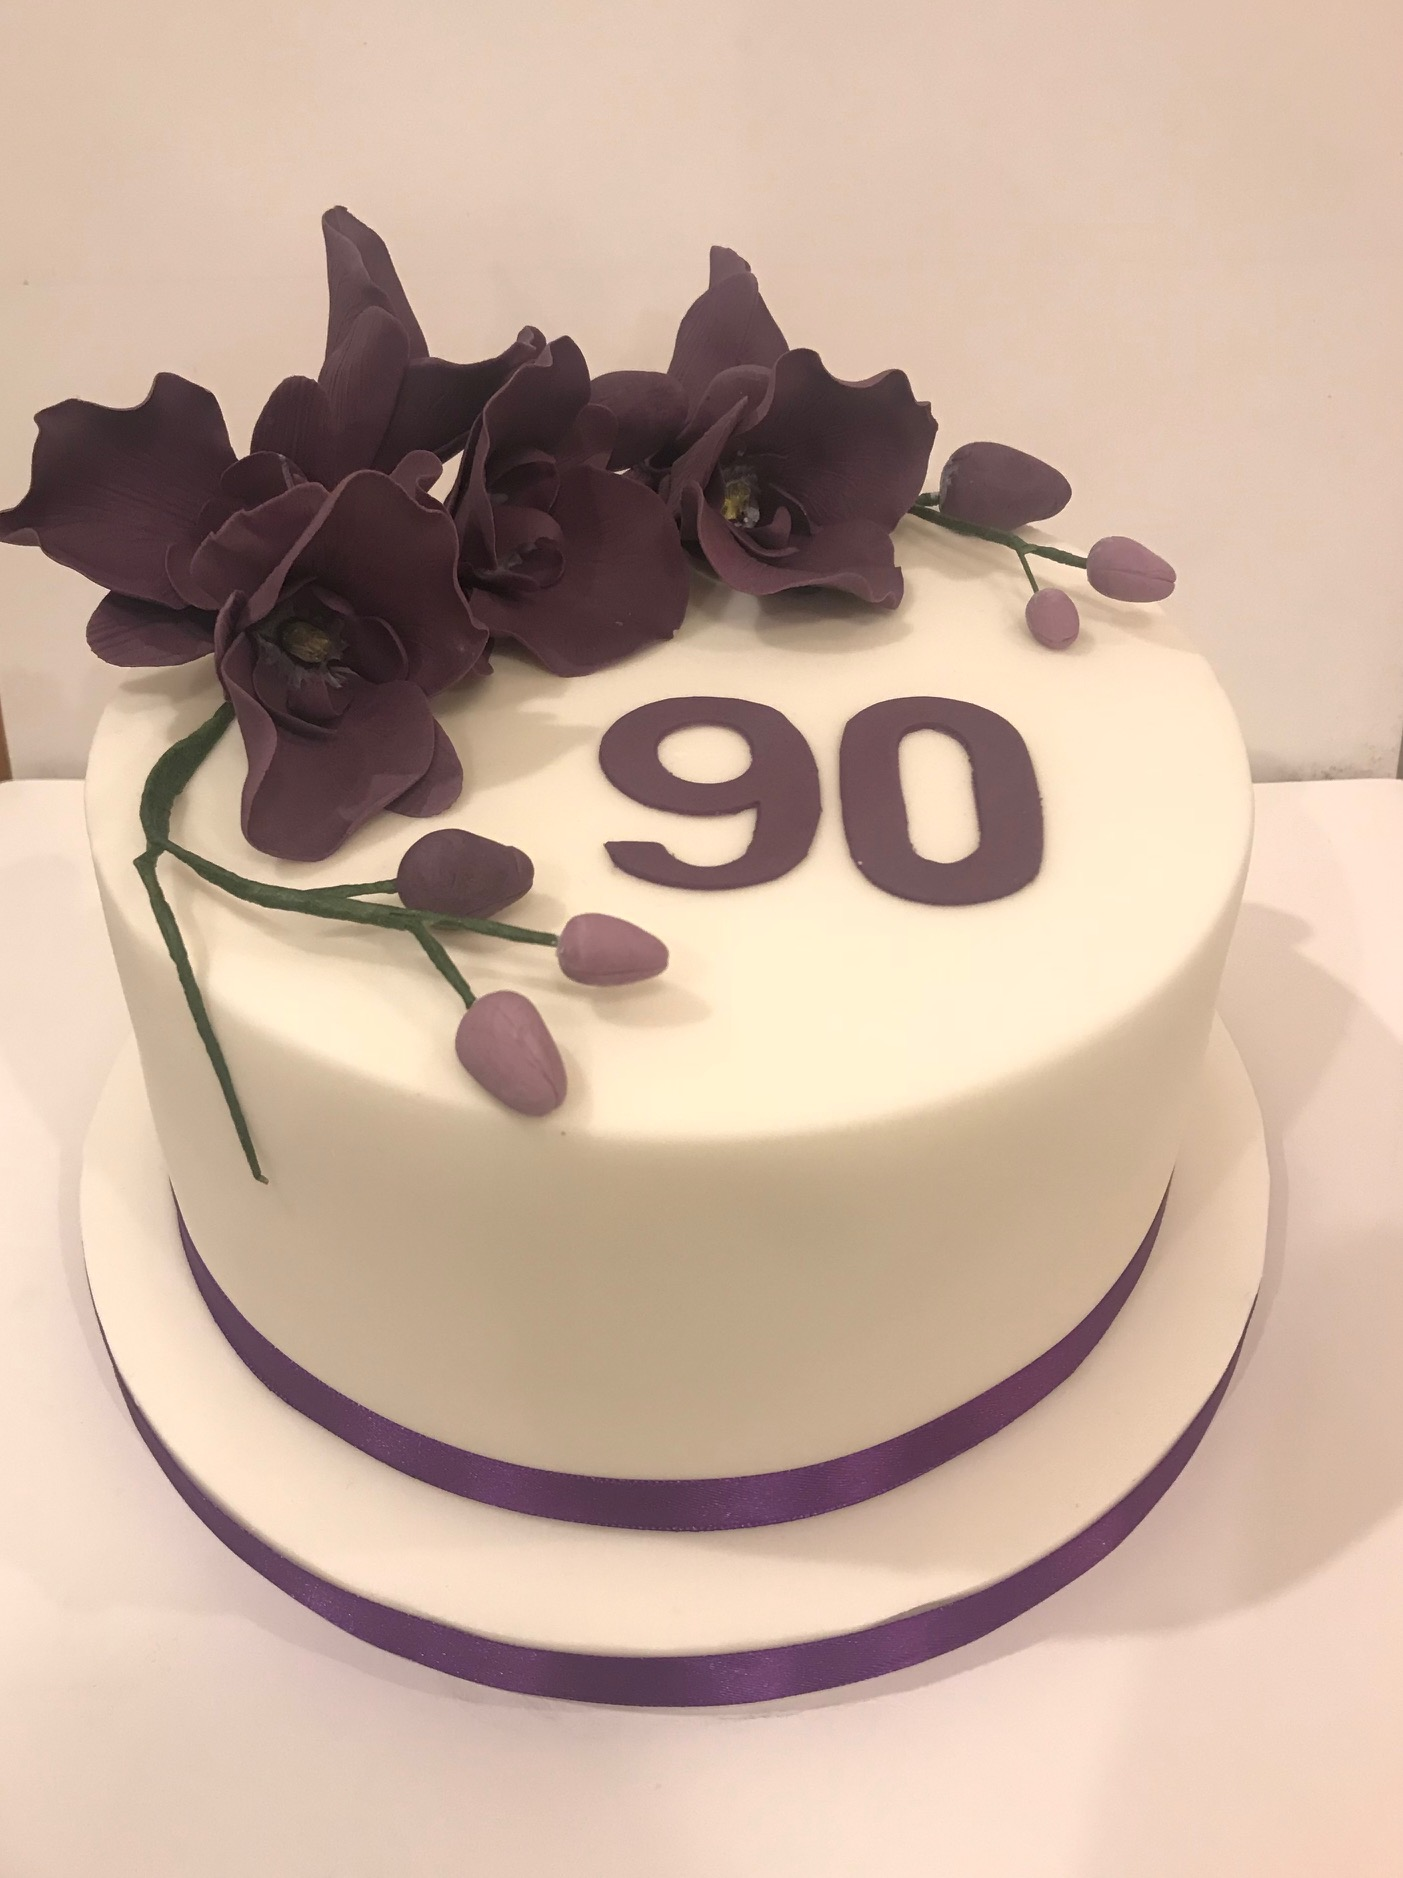 90th birthday Orchid cake, St.Arvans, Chepstow.